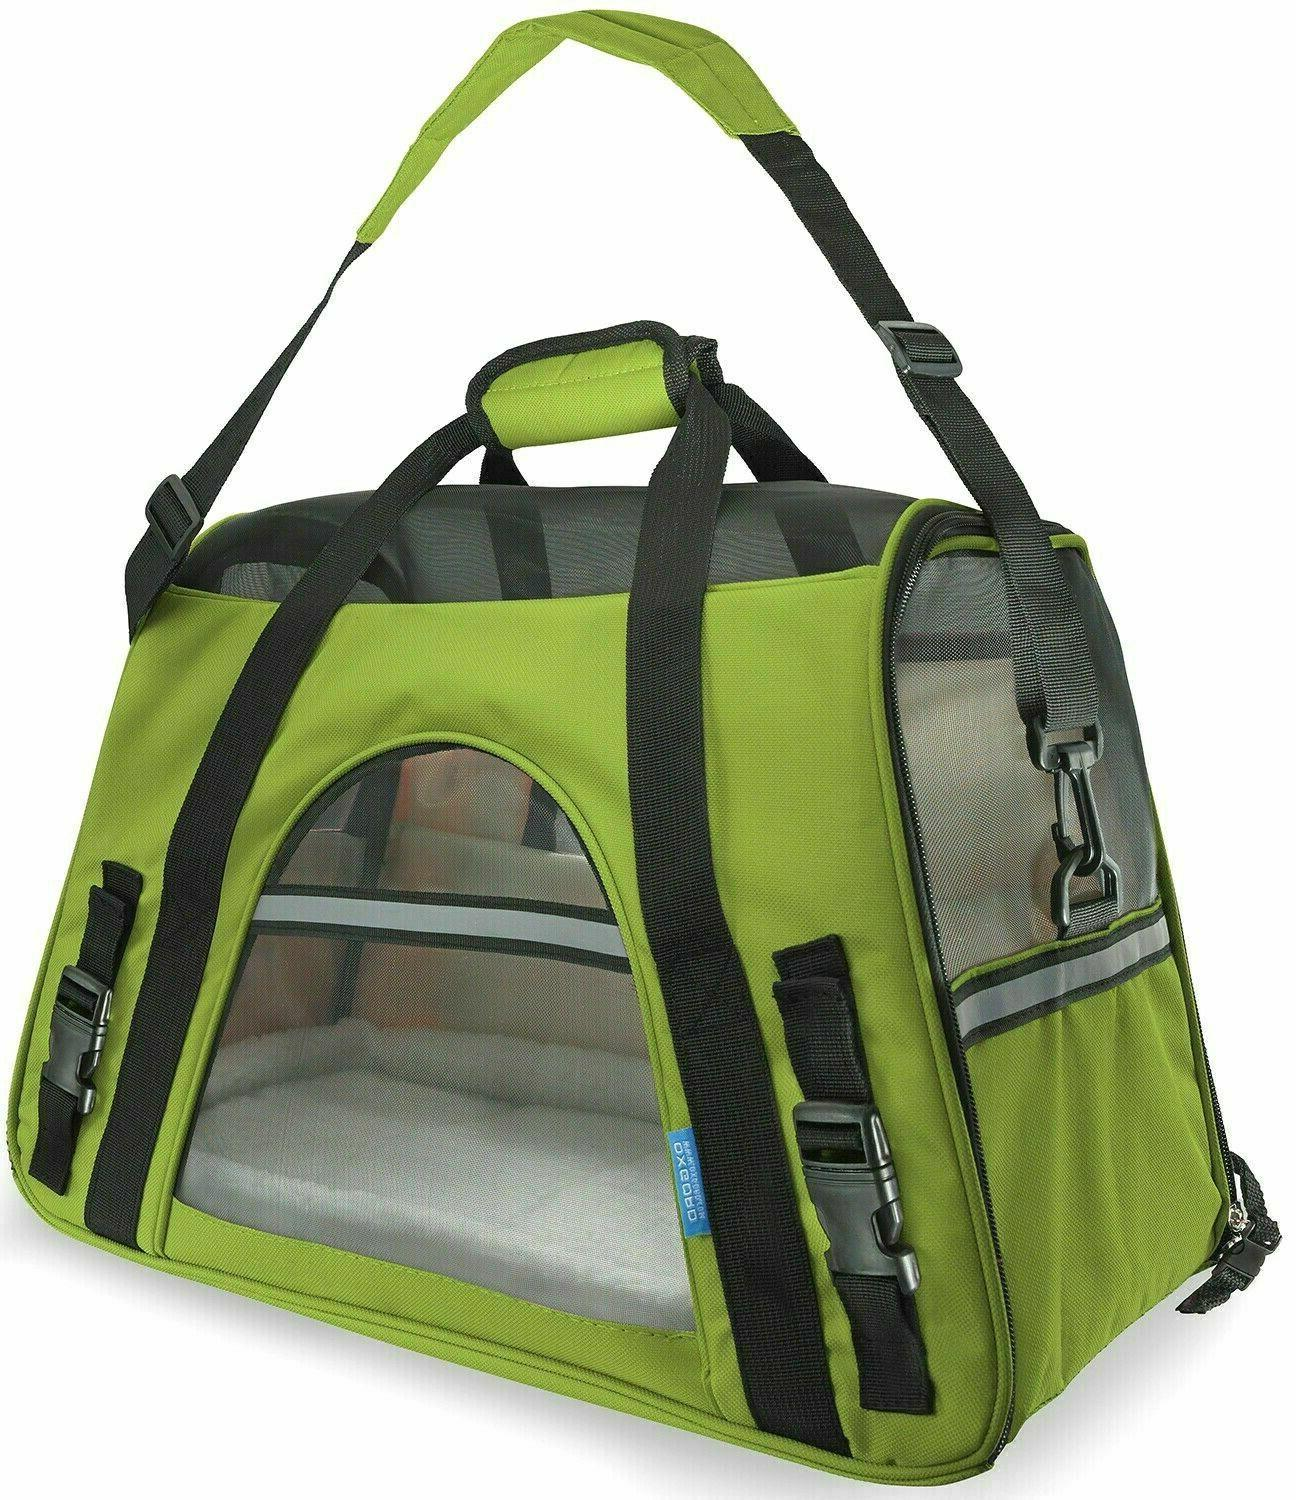 NEW Carrier Sided Cat Comfort Travel Tote Approved